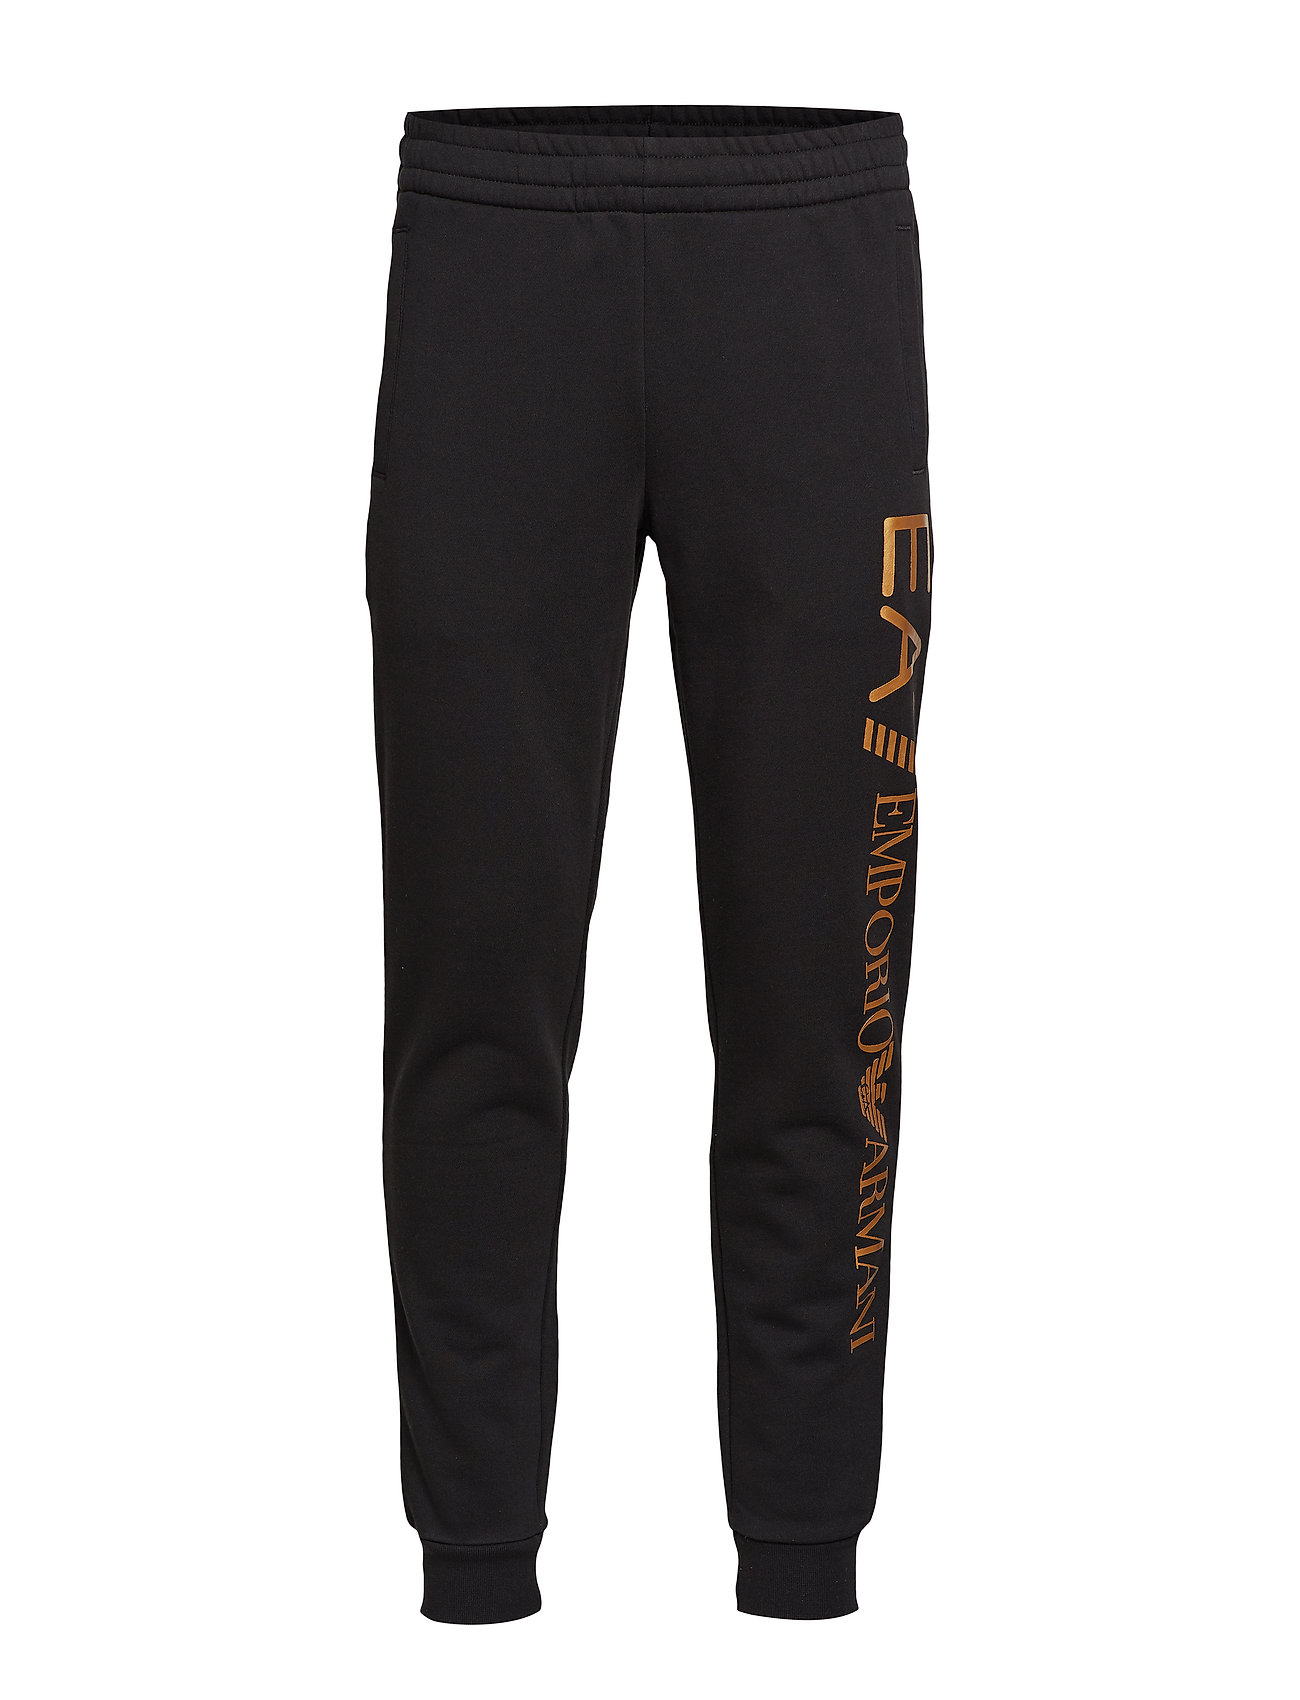 EA7 PANTS - BLACK